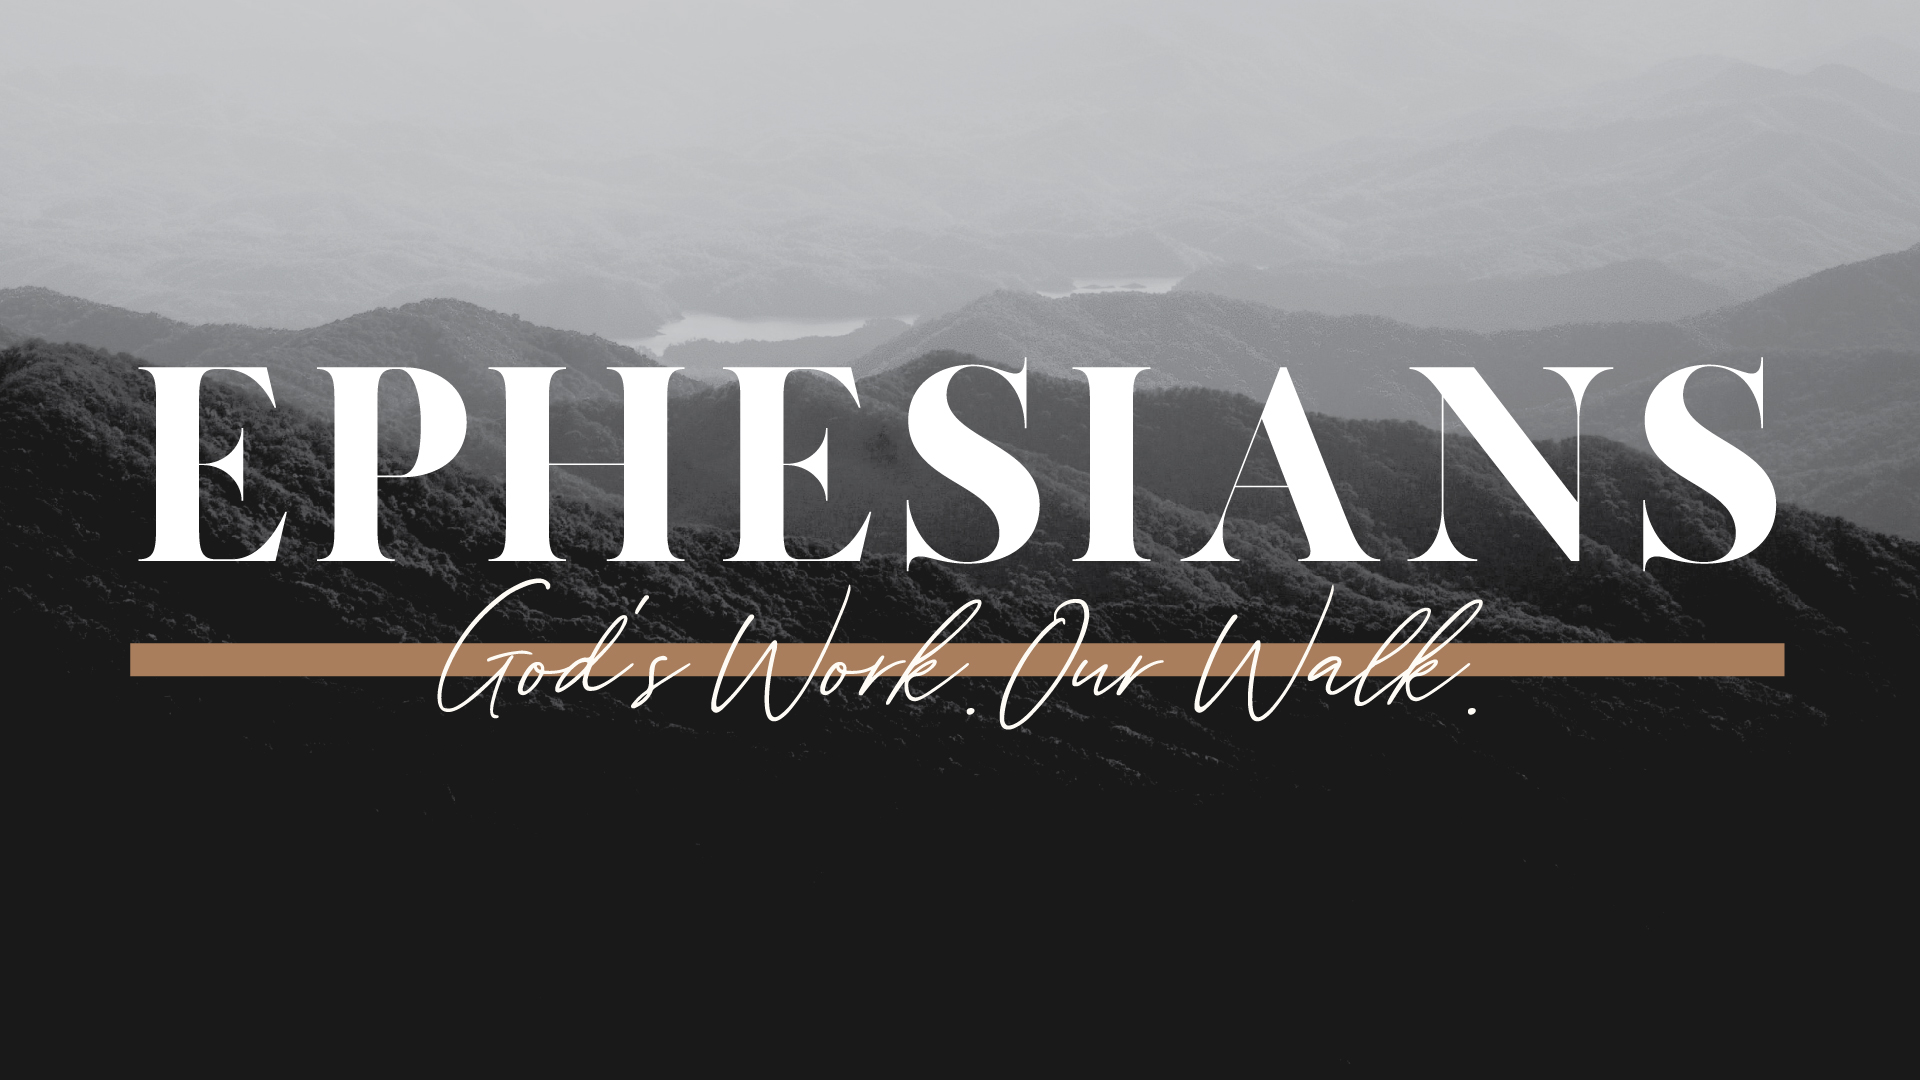 Ephesians: God's Work, Our Walk